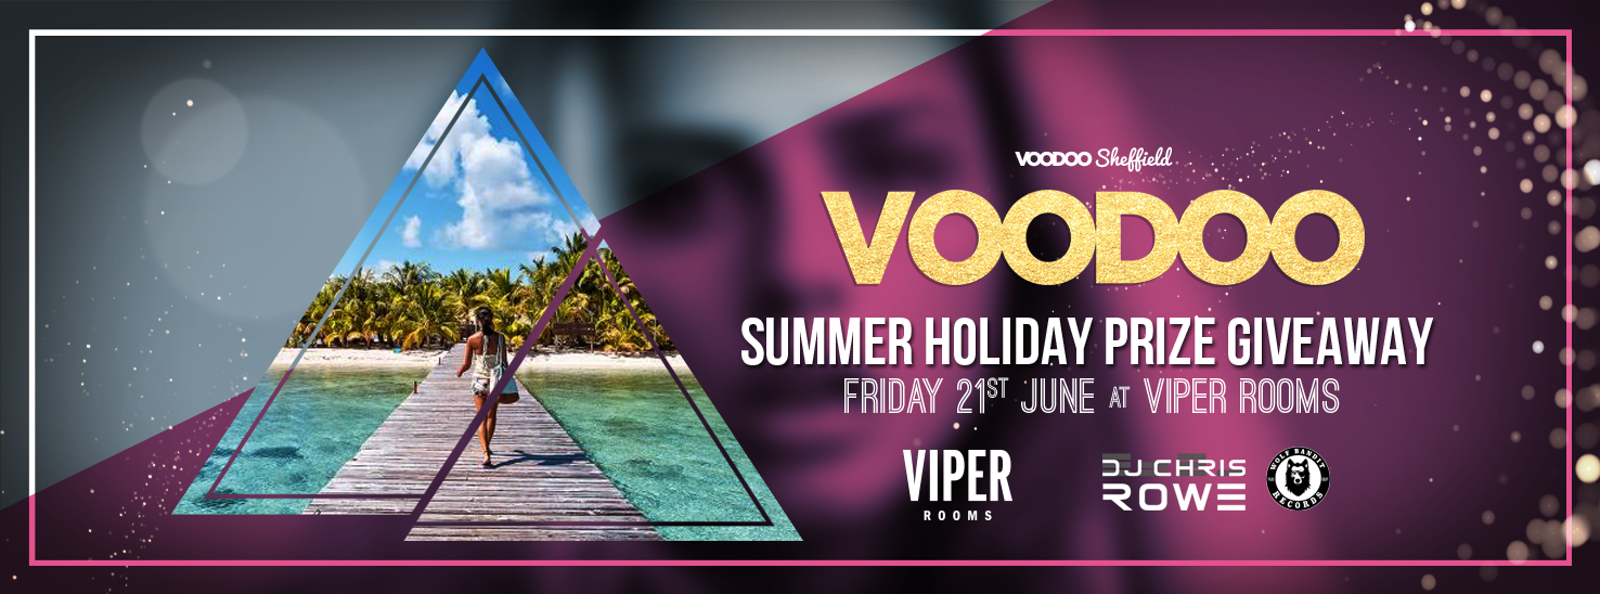 Voodoo Fridays – Summer Holiday Prize Giveaway!